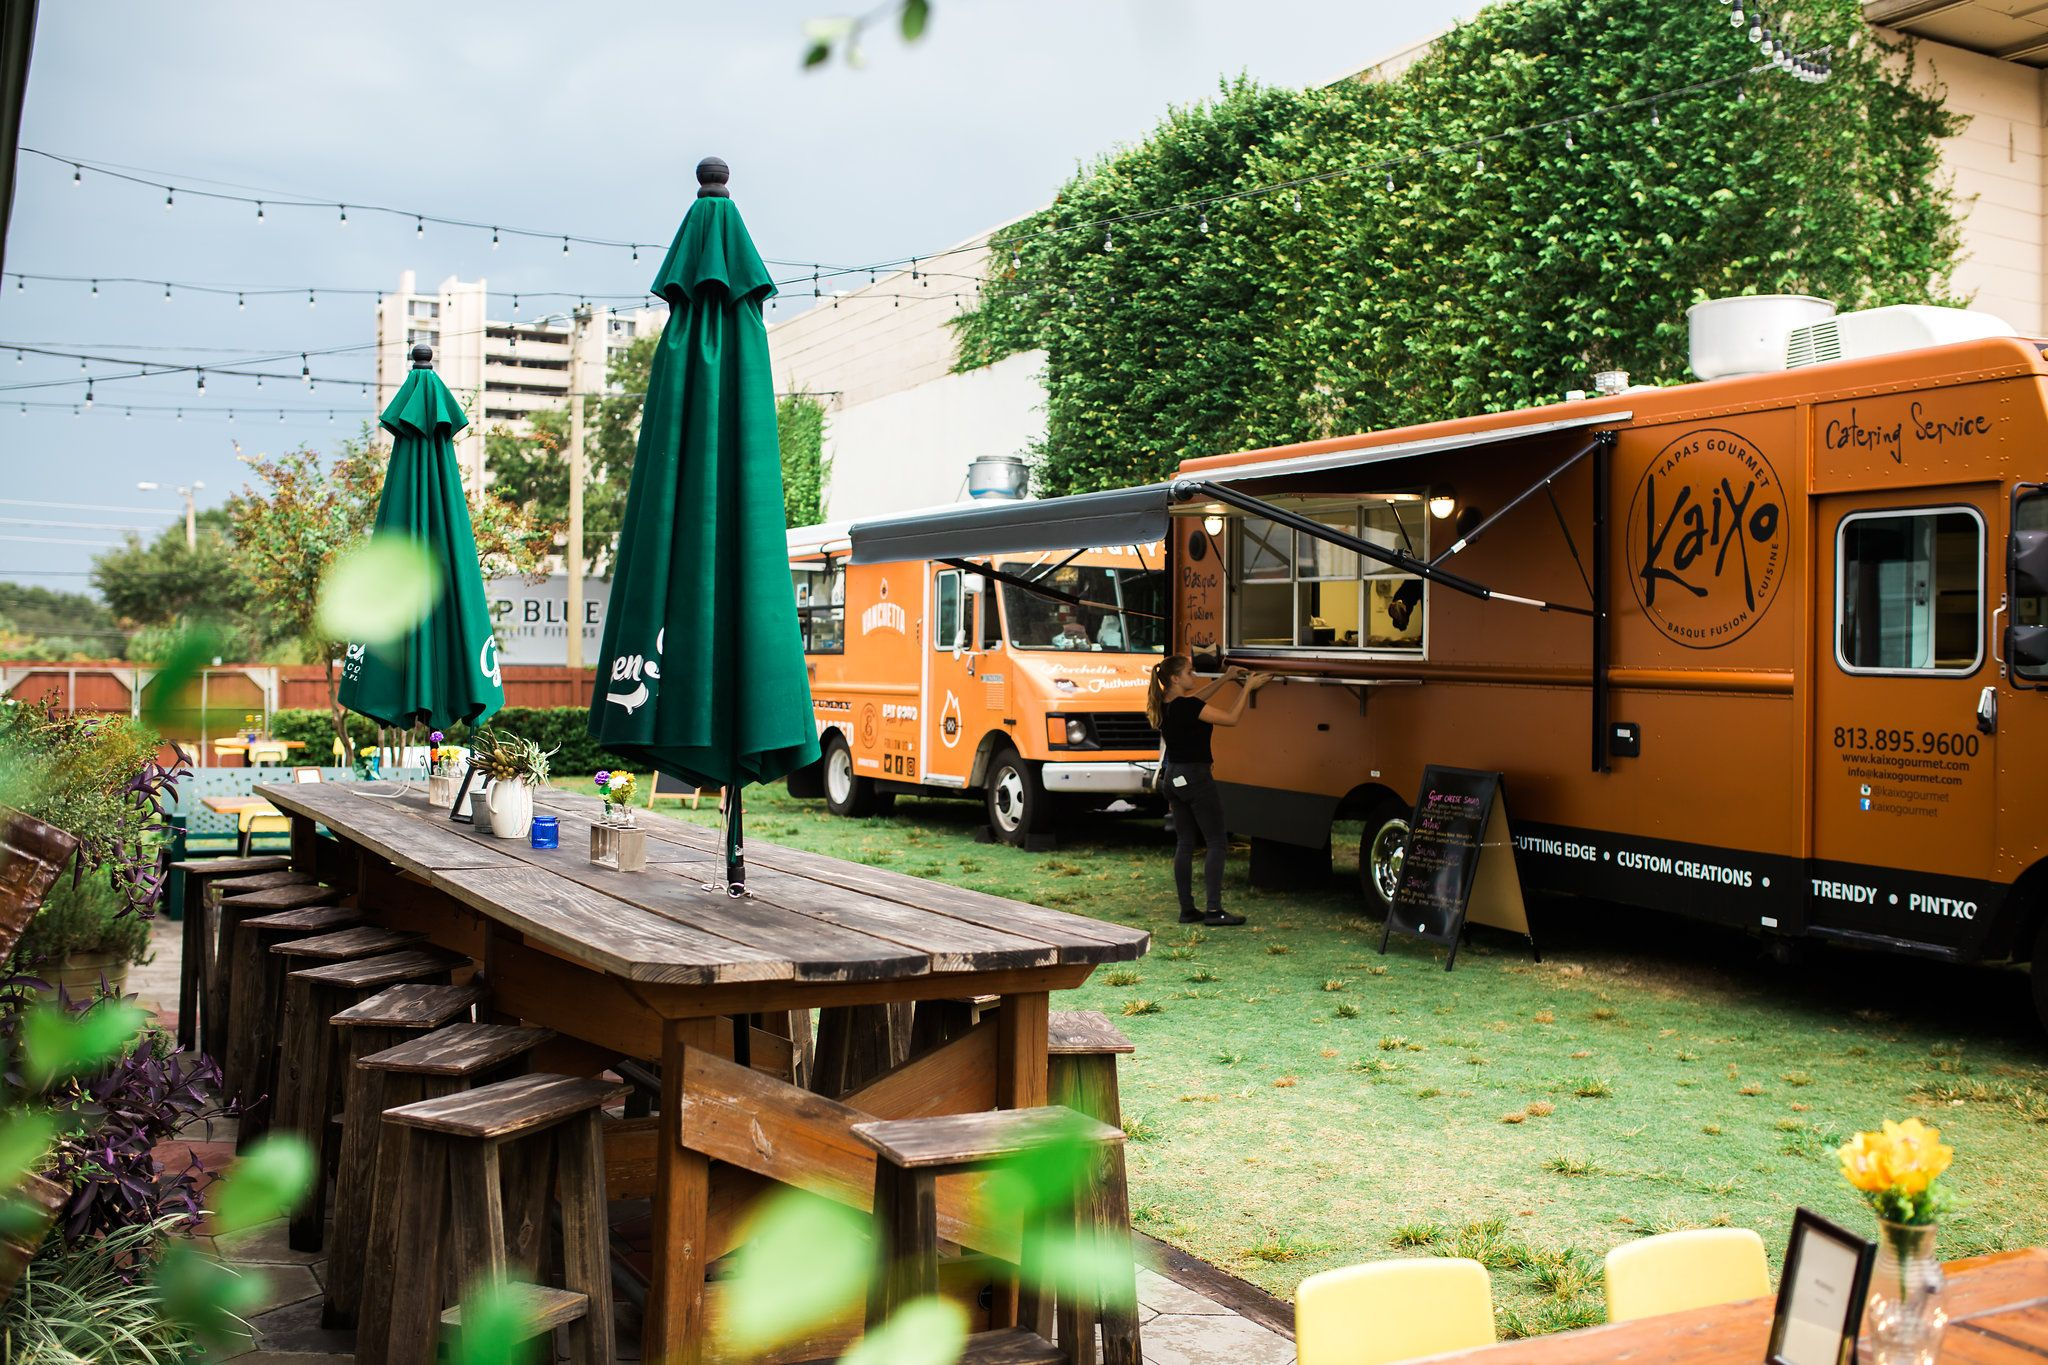 Bring Food Trucks To Your Event For Catering Food Truck Catering Event Food Food For Special Event